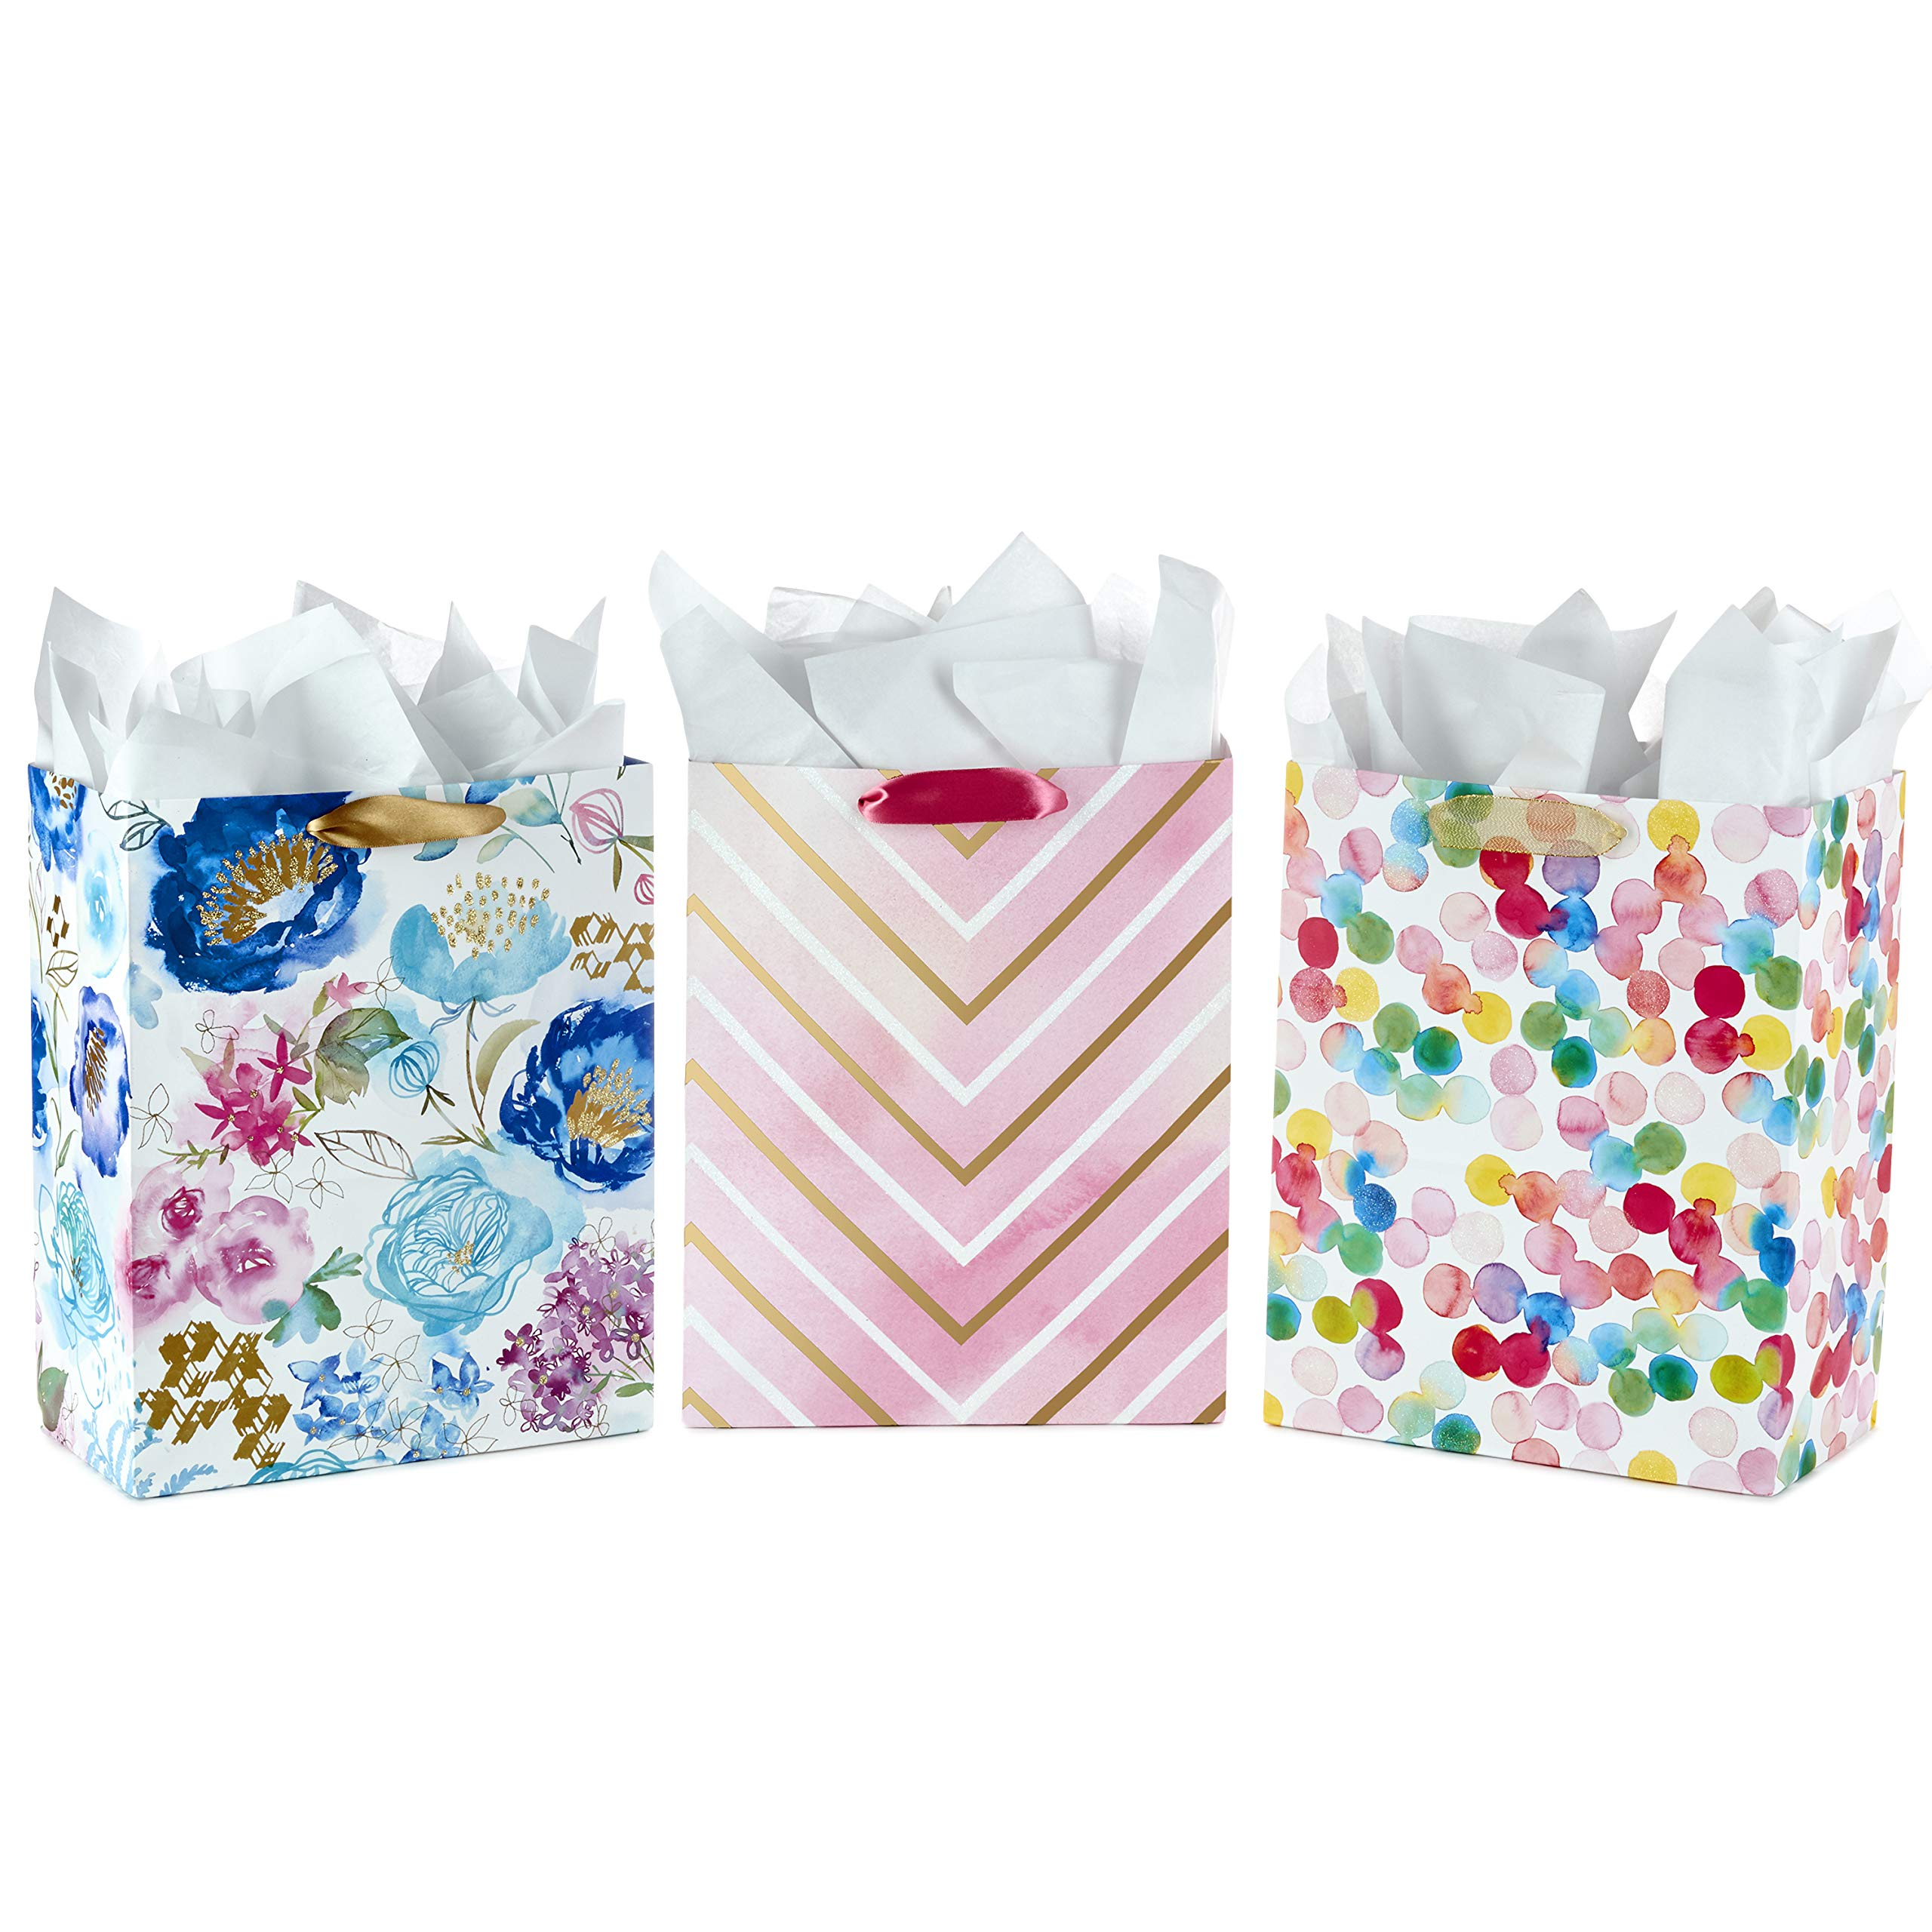 "Hallmark 13"" Large Gift Bags Assortment with Tissue Paper (Pack of 3: Floral, Chevron, Dots) for Birthdays, Mother's Day, Baby Showers, Bridal Showers, Bridesmaids Gifts, Weddings, Any Occasion"